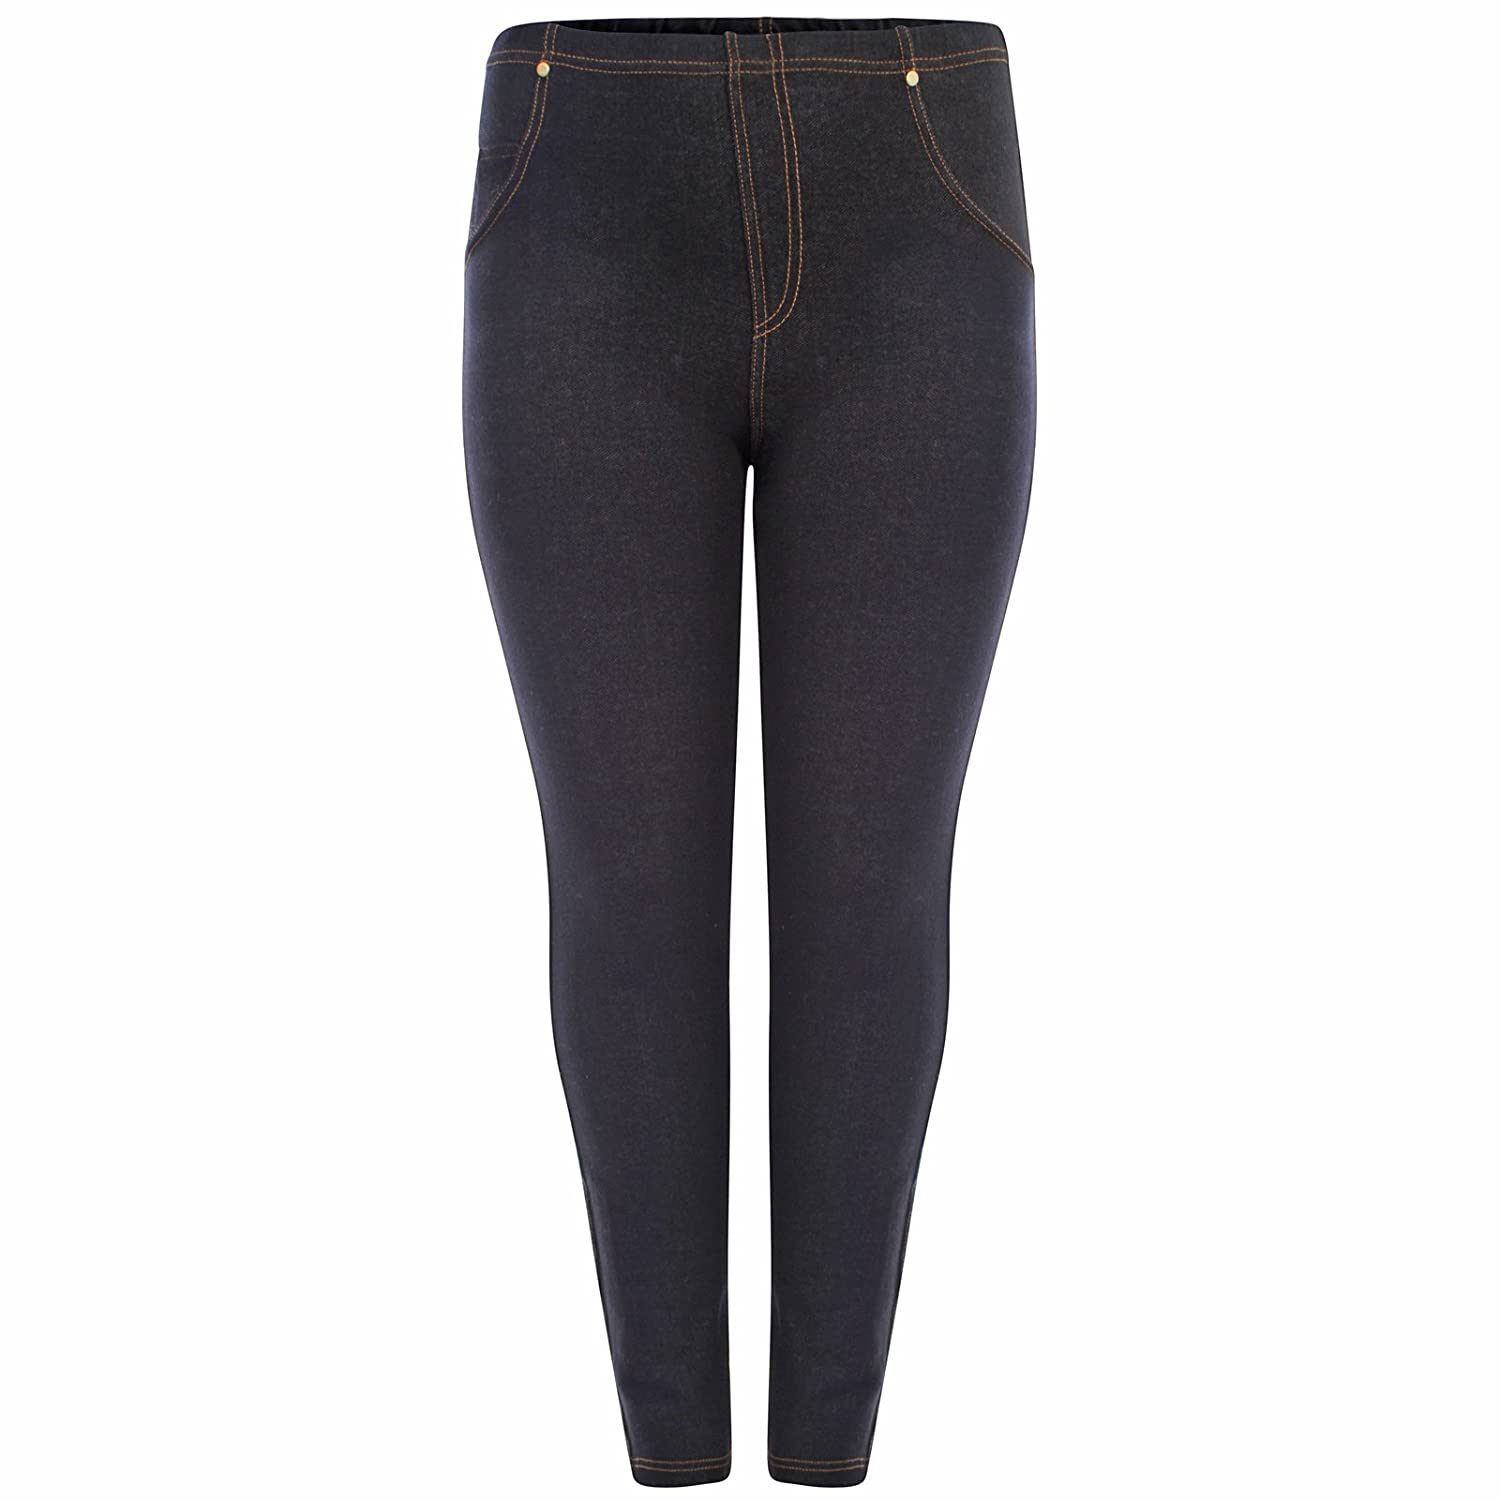 Shineboy F4S Womens Plus Size High Waisted Ladies Denim Jean Blue Black Jeggings 16-30